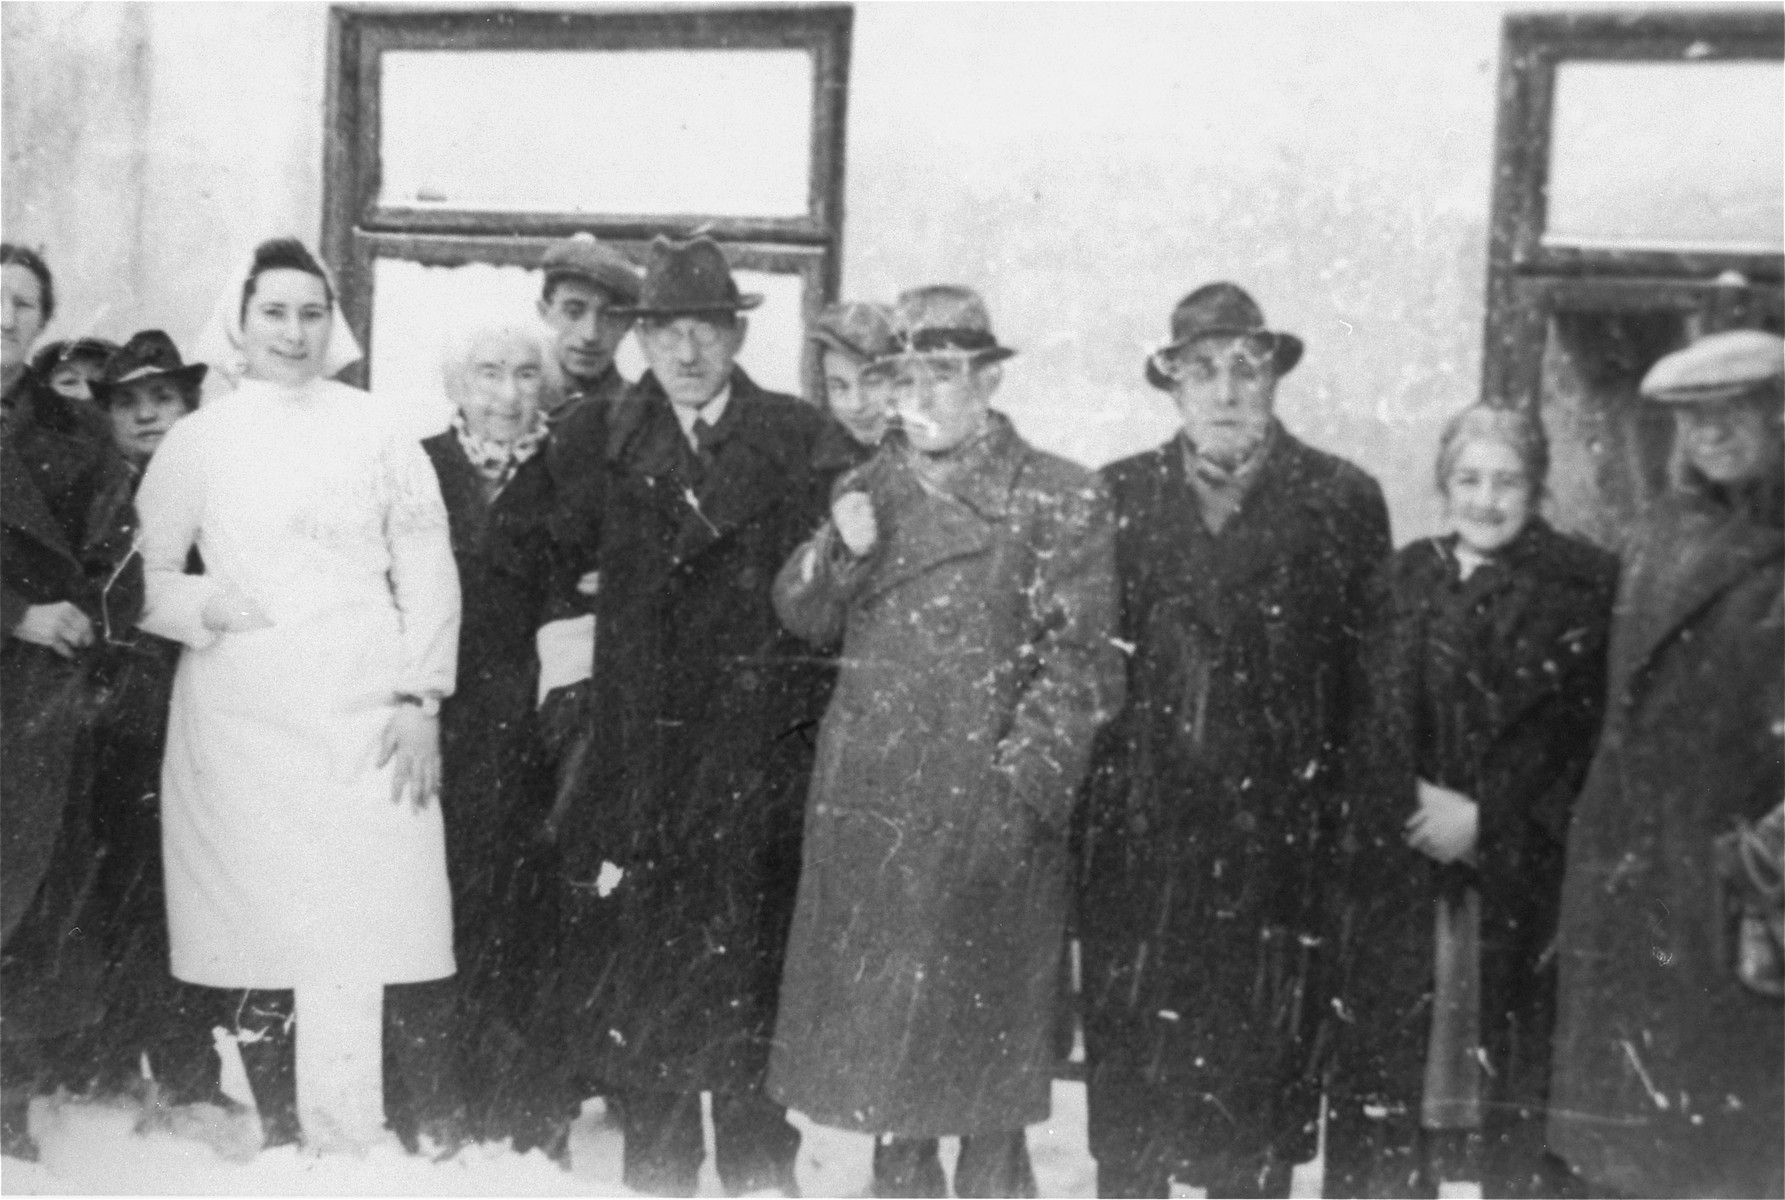 Group portrait of Jews from Vienna outside a home for the elderly in the Kielce ghetto.